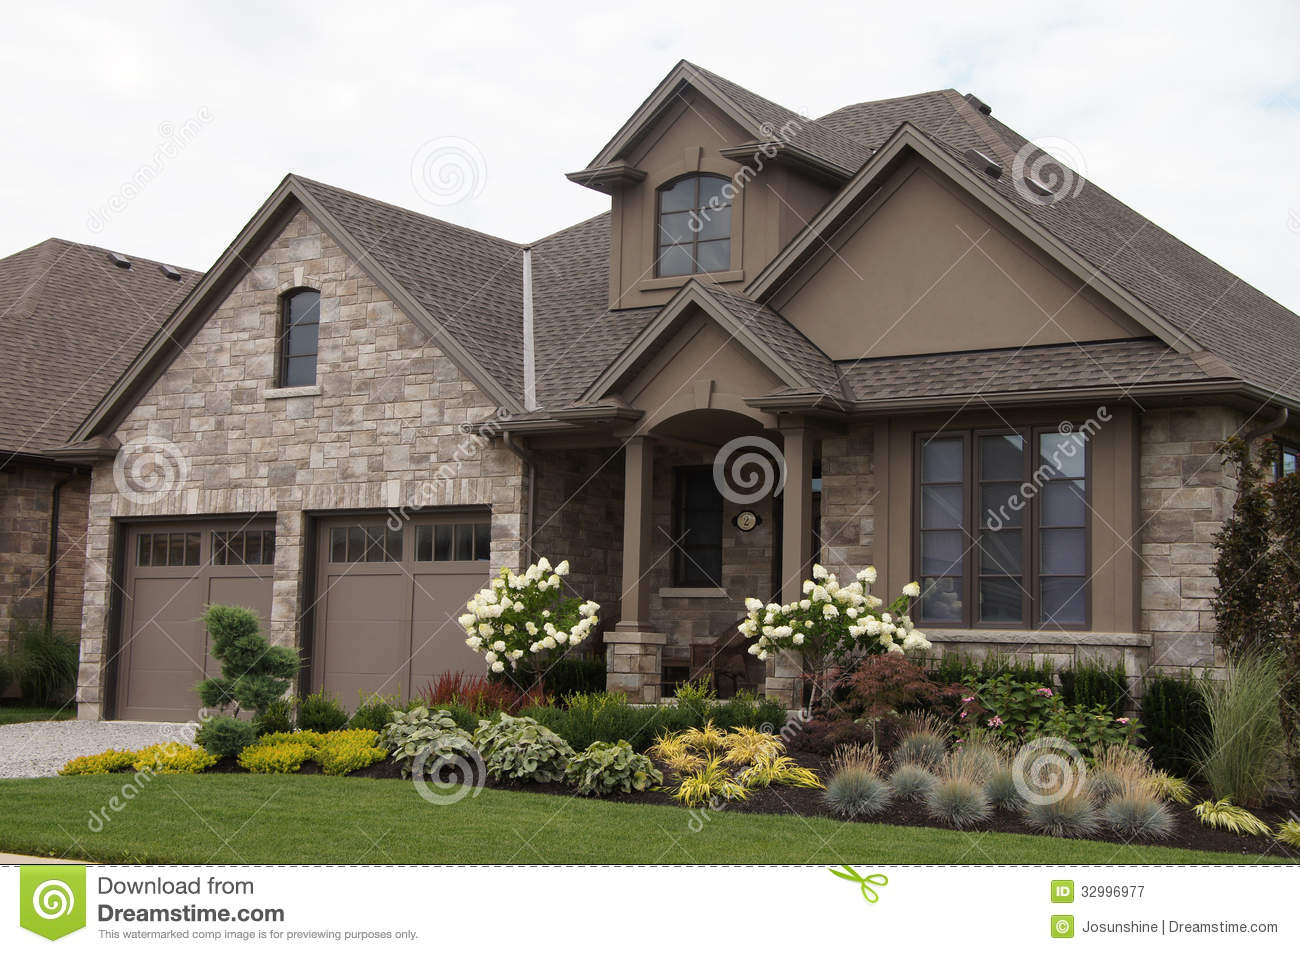 Stucco stone house pretty garden royalty free stock for Stucco and stone